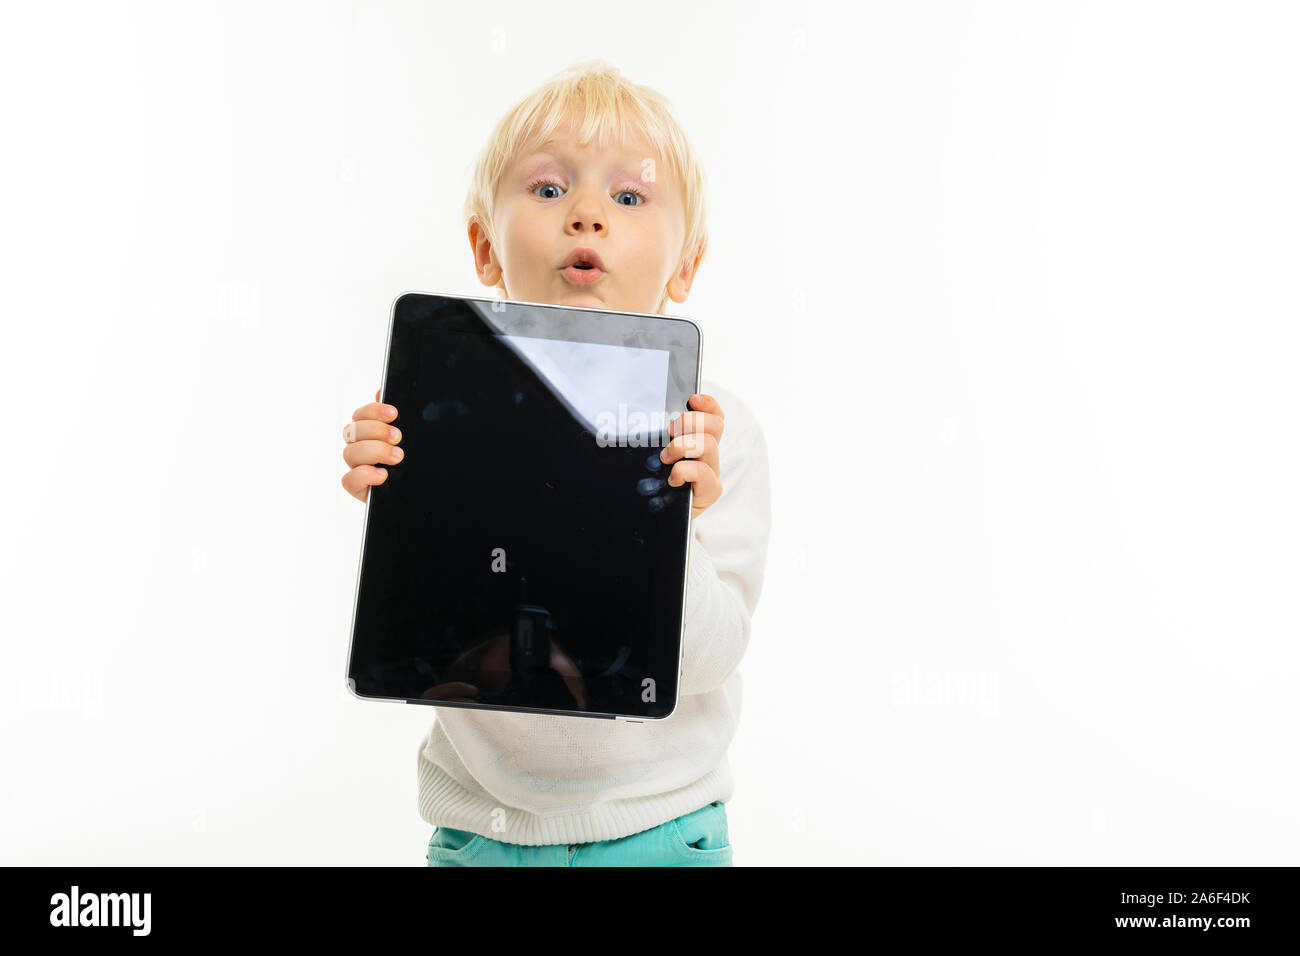 Little Boy With Short Blonde Hair Blue Eyes Cute Appearance In White Jacket Light Blue Pants Stands With A Tablet And Holds It In His Hands Stock Photo Alamy